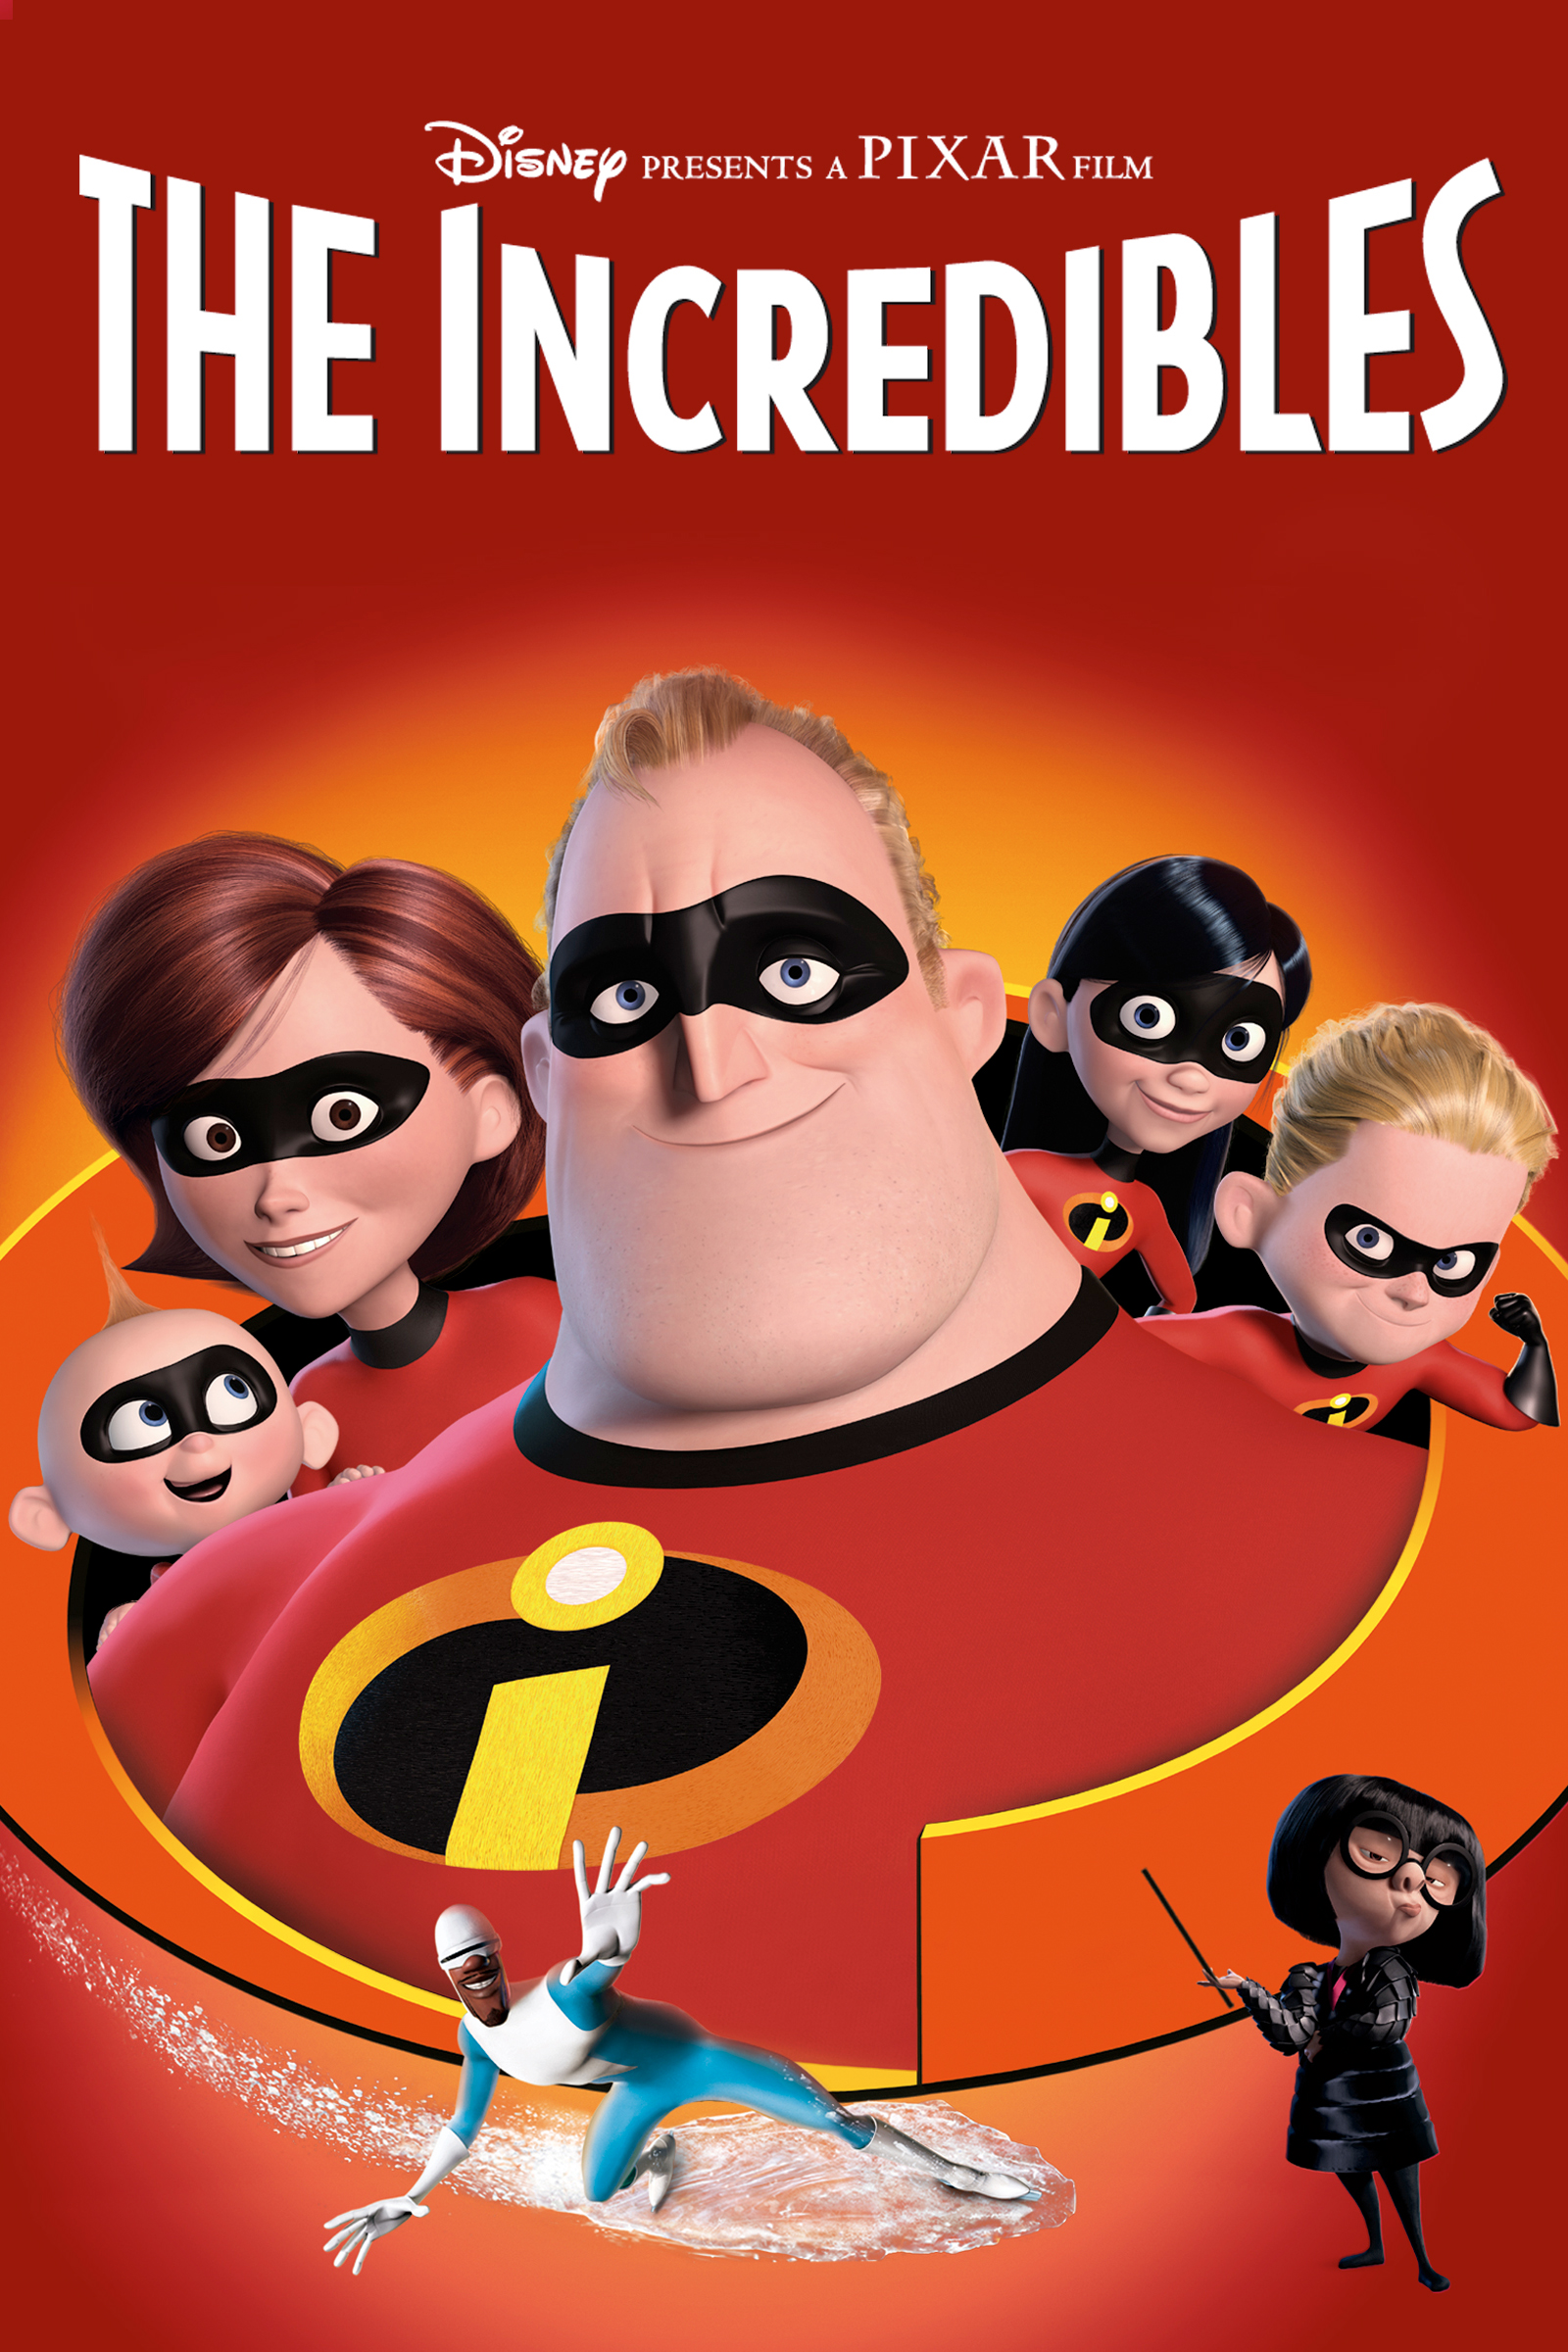 The incredibles -  Saturday 13 January - Cinema in the CemeteryThe Incredibles (PG)A family of undercover superheroes are forced into action to save the world. Watch this much-loved Pixar classic before the highly anticipated sequel comes out later this year.